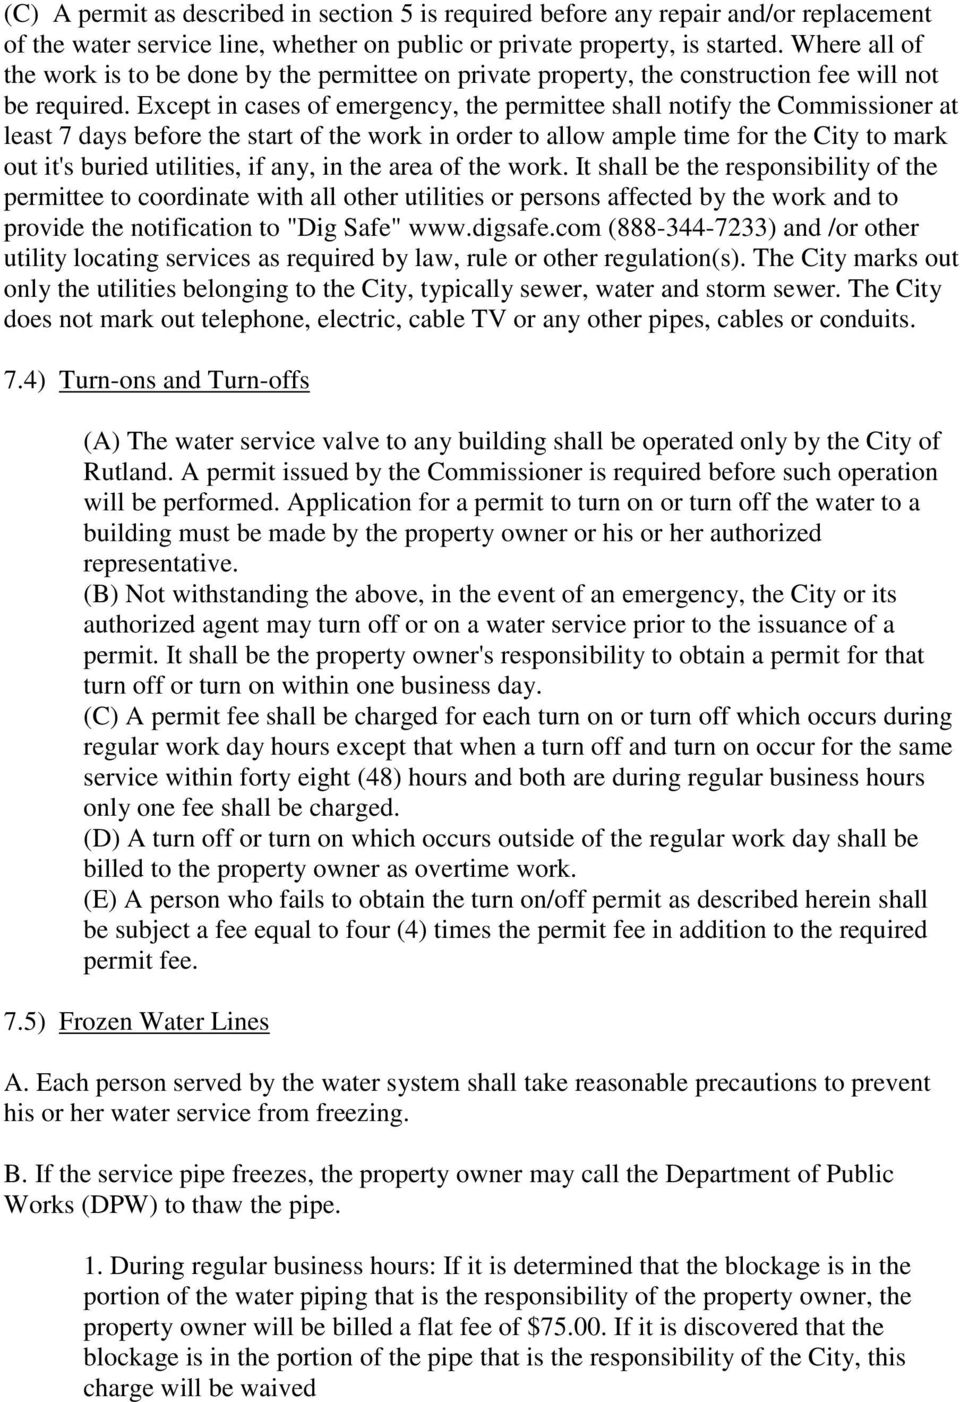 Except in cases of emergency, the permittee shall notify the Commissioner at least 7 days before the start of the work in order to allow ample time for the City to mark out it's buried utilities, if